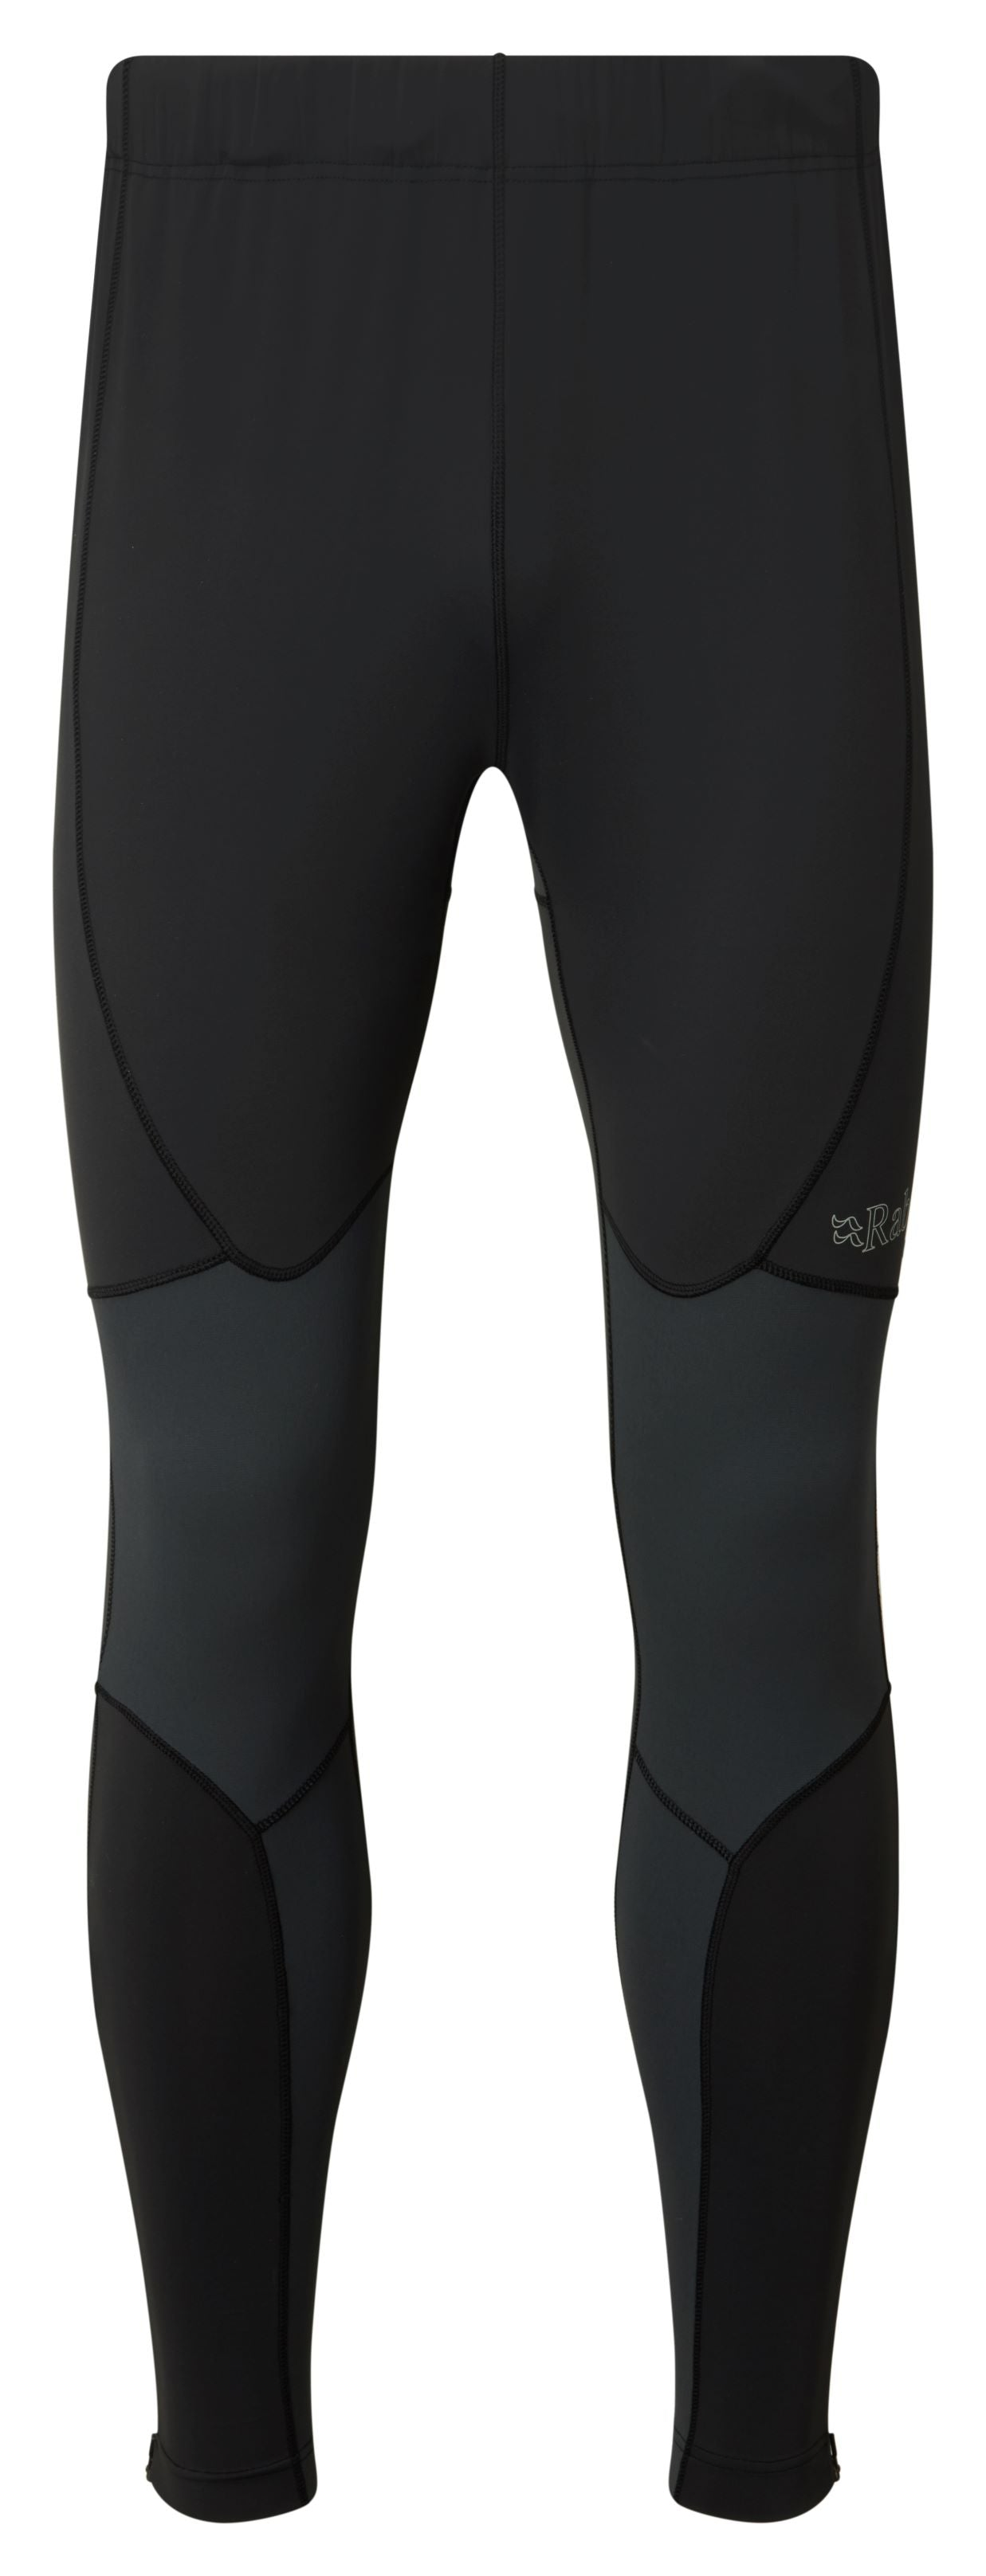 Rab Skyline Tights